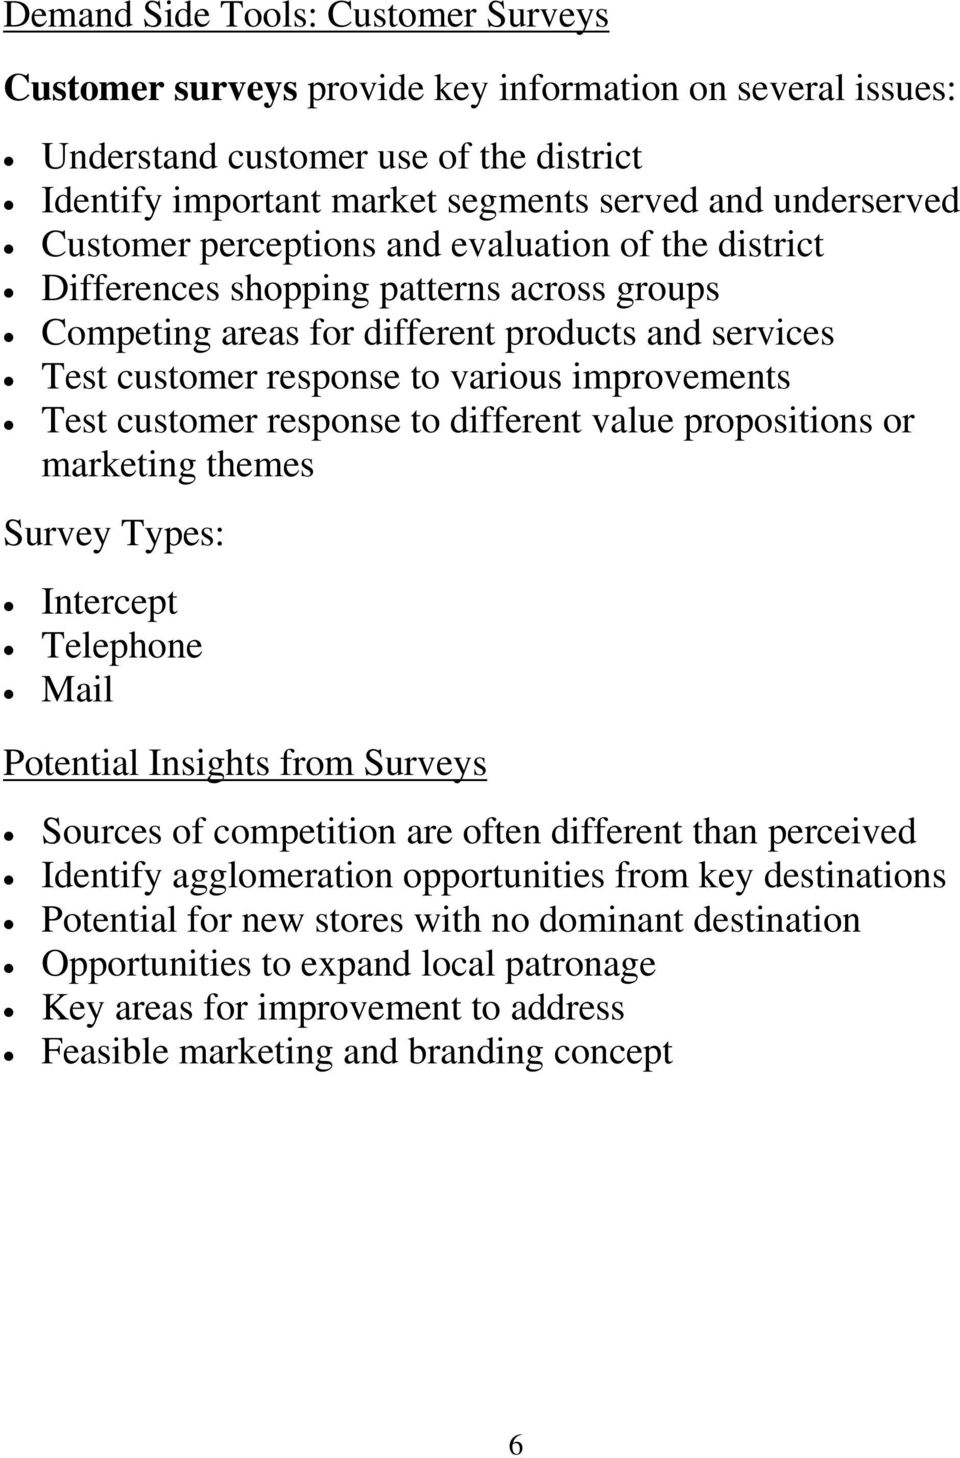 customer response to different value propositions or marketing themes Survey Types: Intercept Telephone Mail Potential Insights from Surveys Sources of competition are often different than perceived